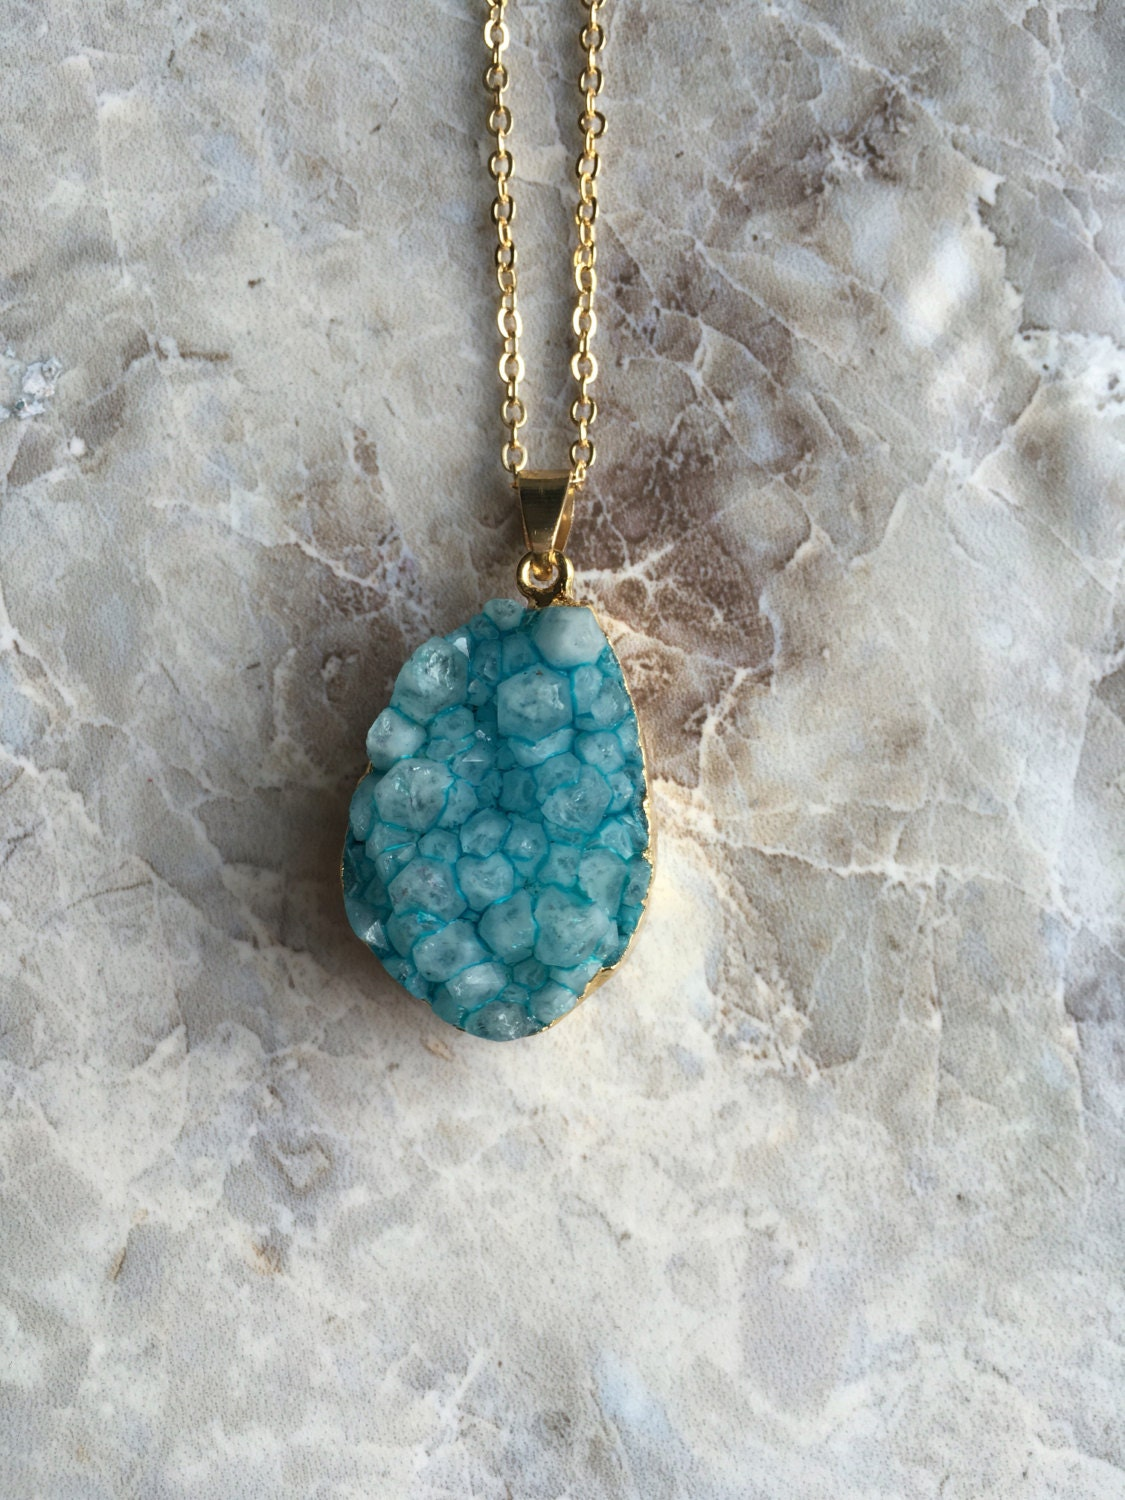 Ocean Blue Boho Agate Druzy Pendant Necklace Hippy Style Free Spirit Bohemian Gypsy Necklace Ethnic Neclace.